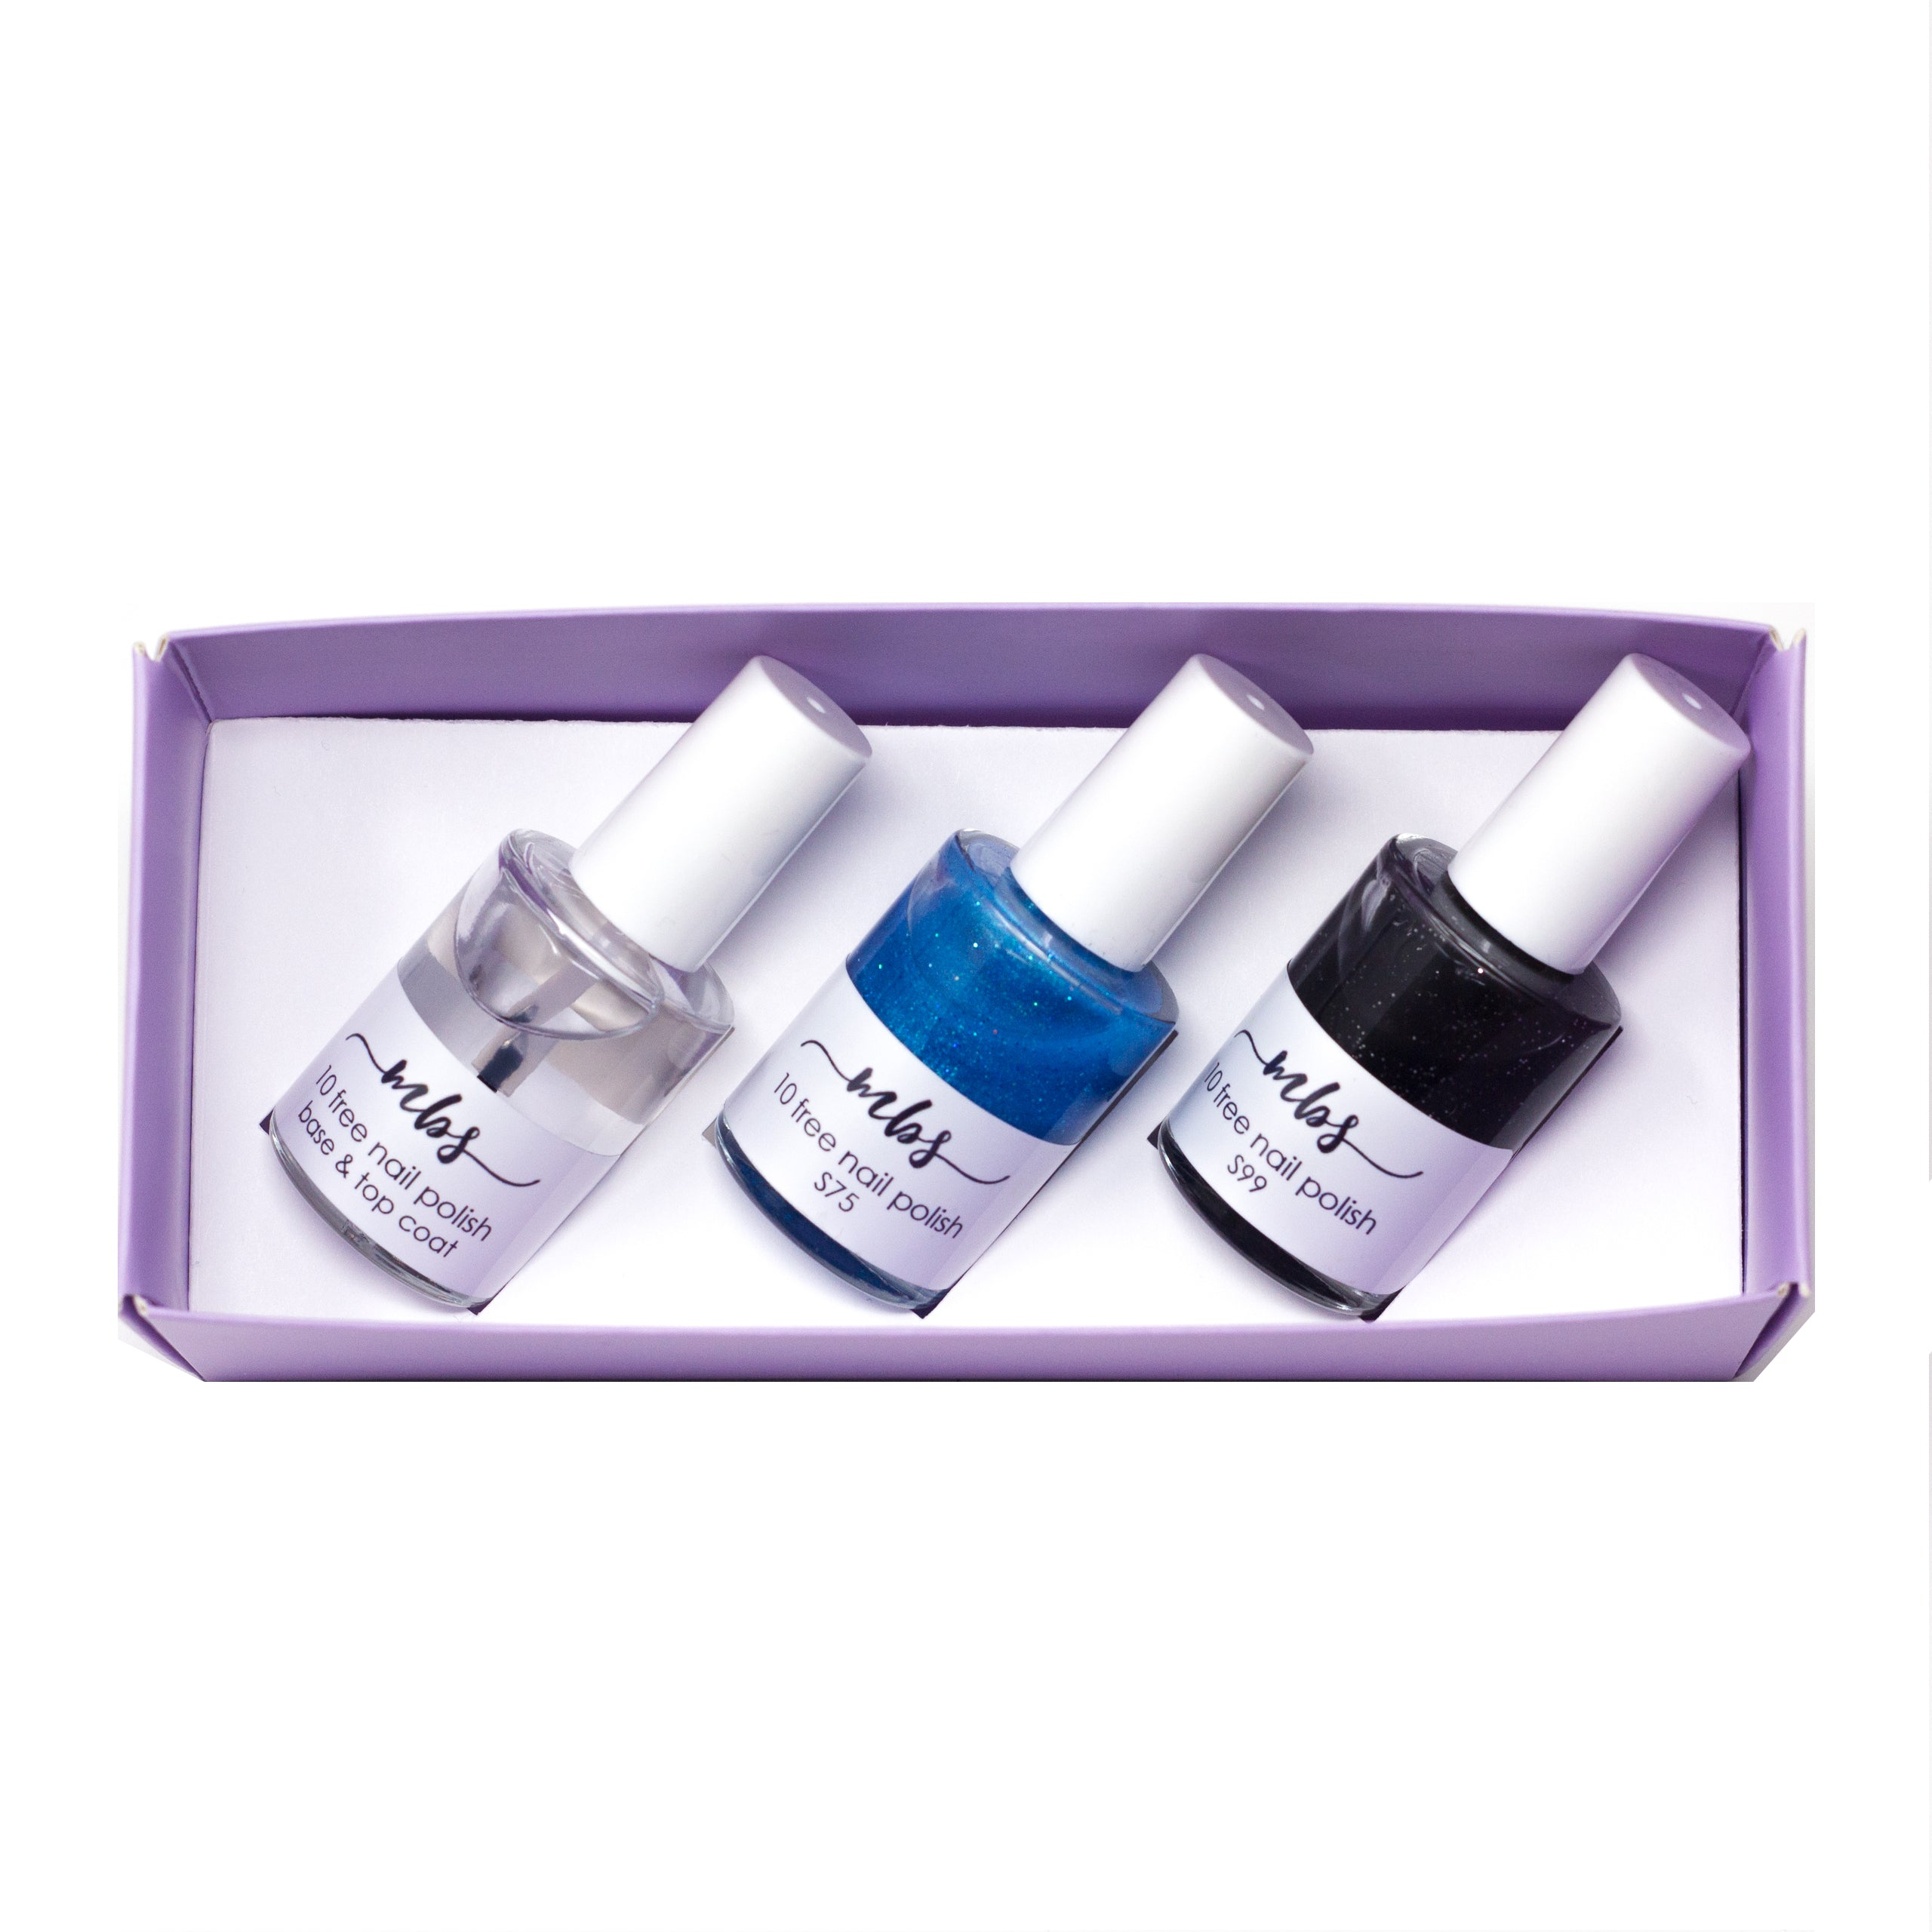 Nail Polish Trio (S75 + S99 + Clear Coat)-Gifts-Morning Blossom Studio